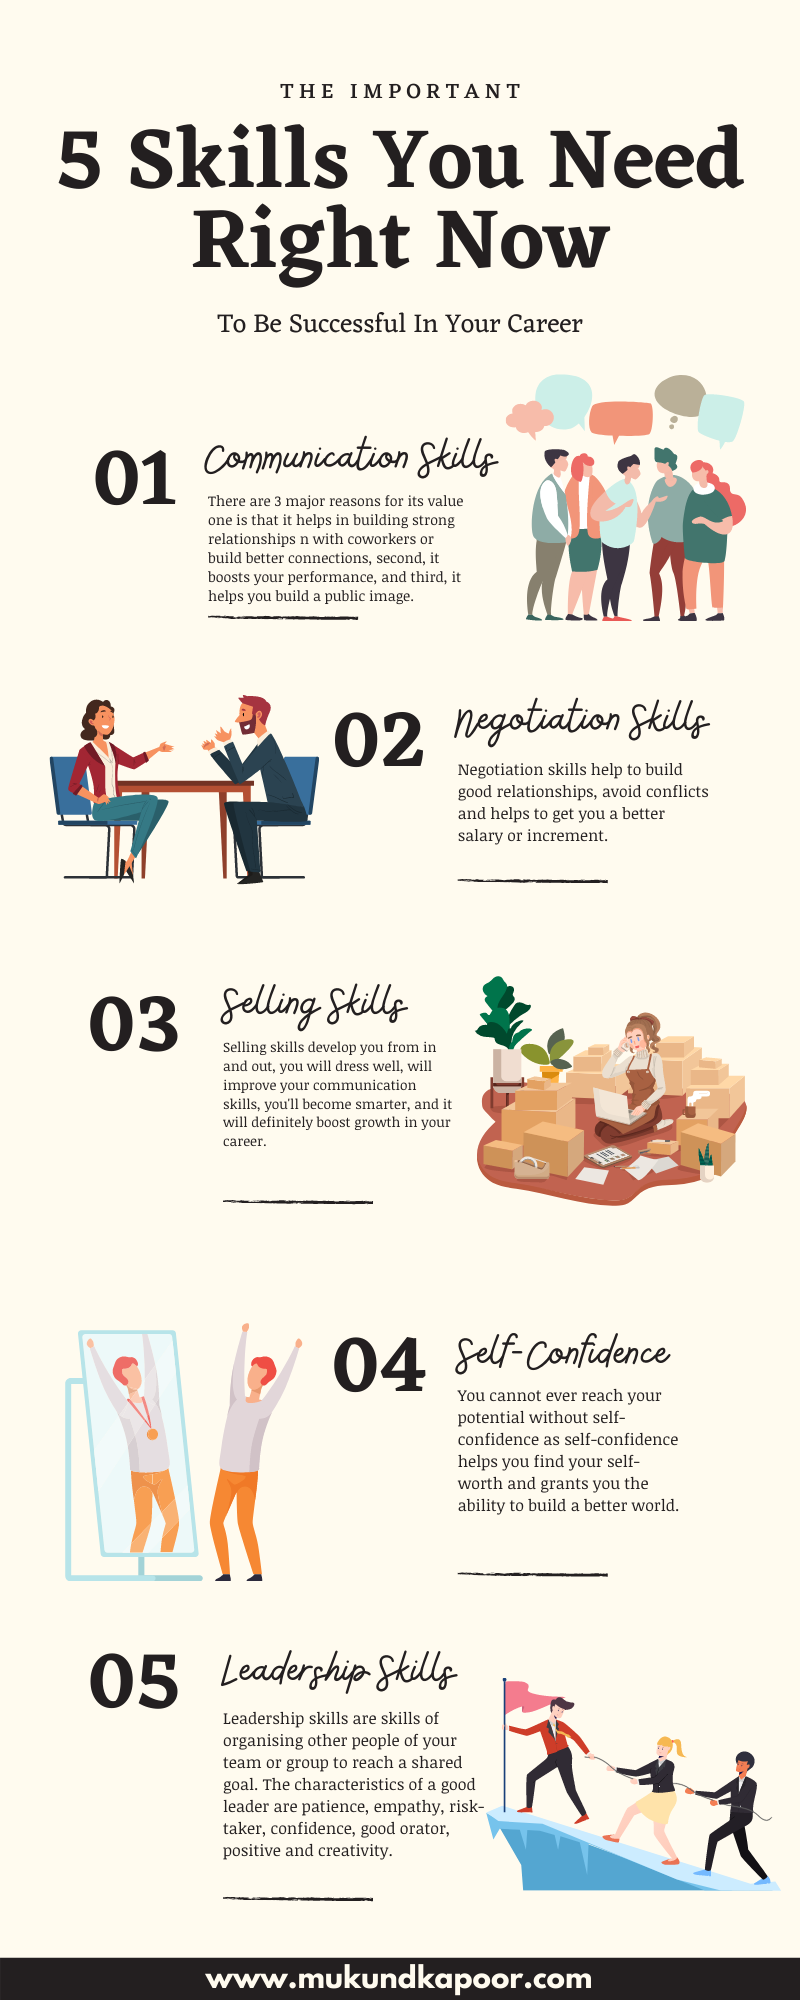 Skills you need right now for a successful career